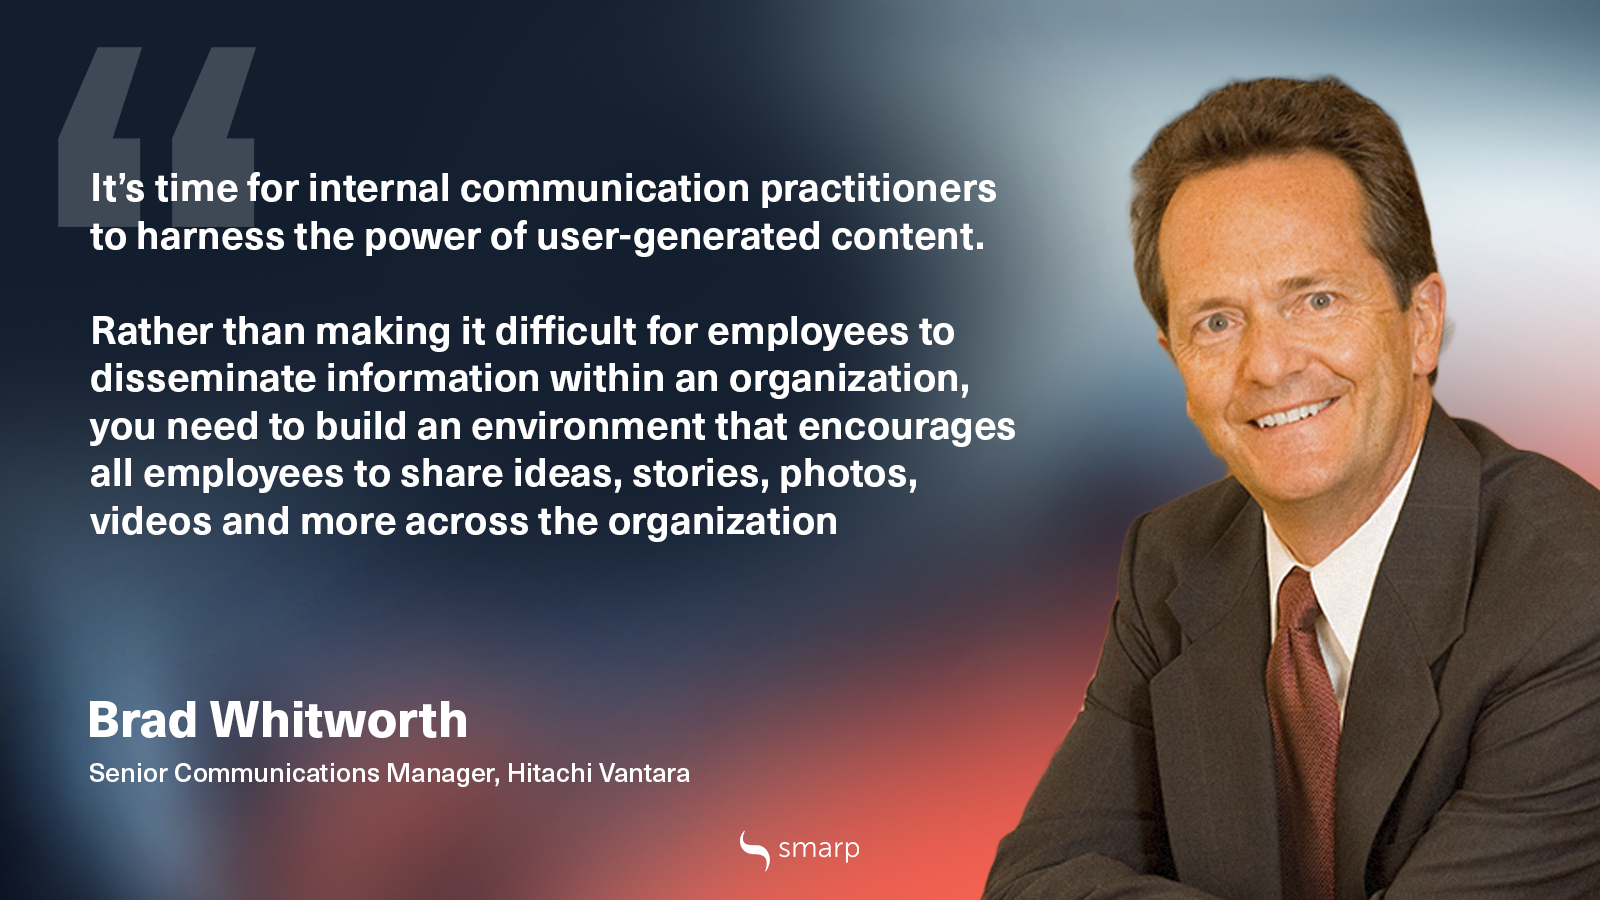 brad whitworth shares his internal communication best practices